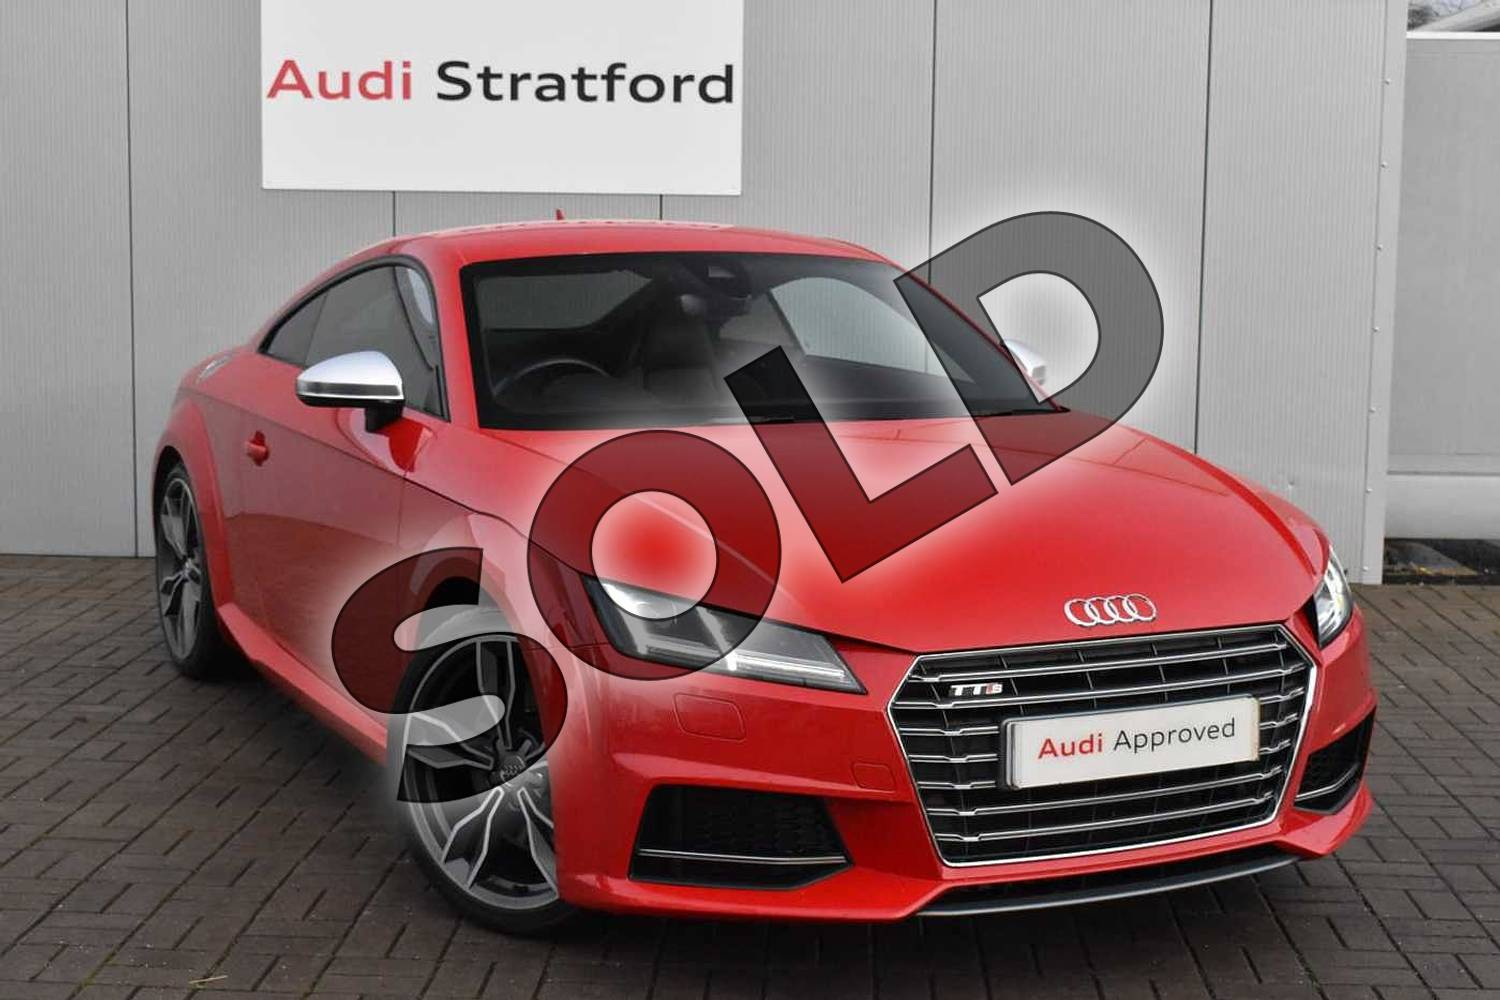 2016 Audi TT Coupe 2.0T FSI Quattro TTS 2dr S Tronic in Tango Red Metallic at Stratford Audi